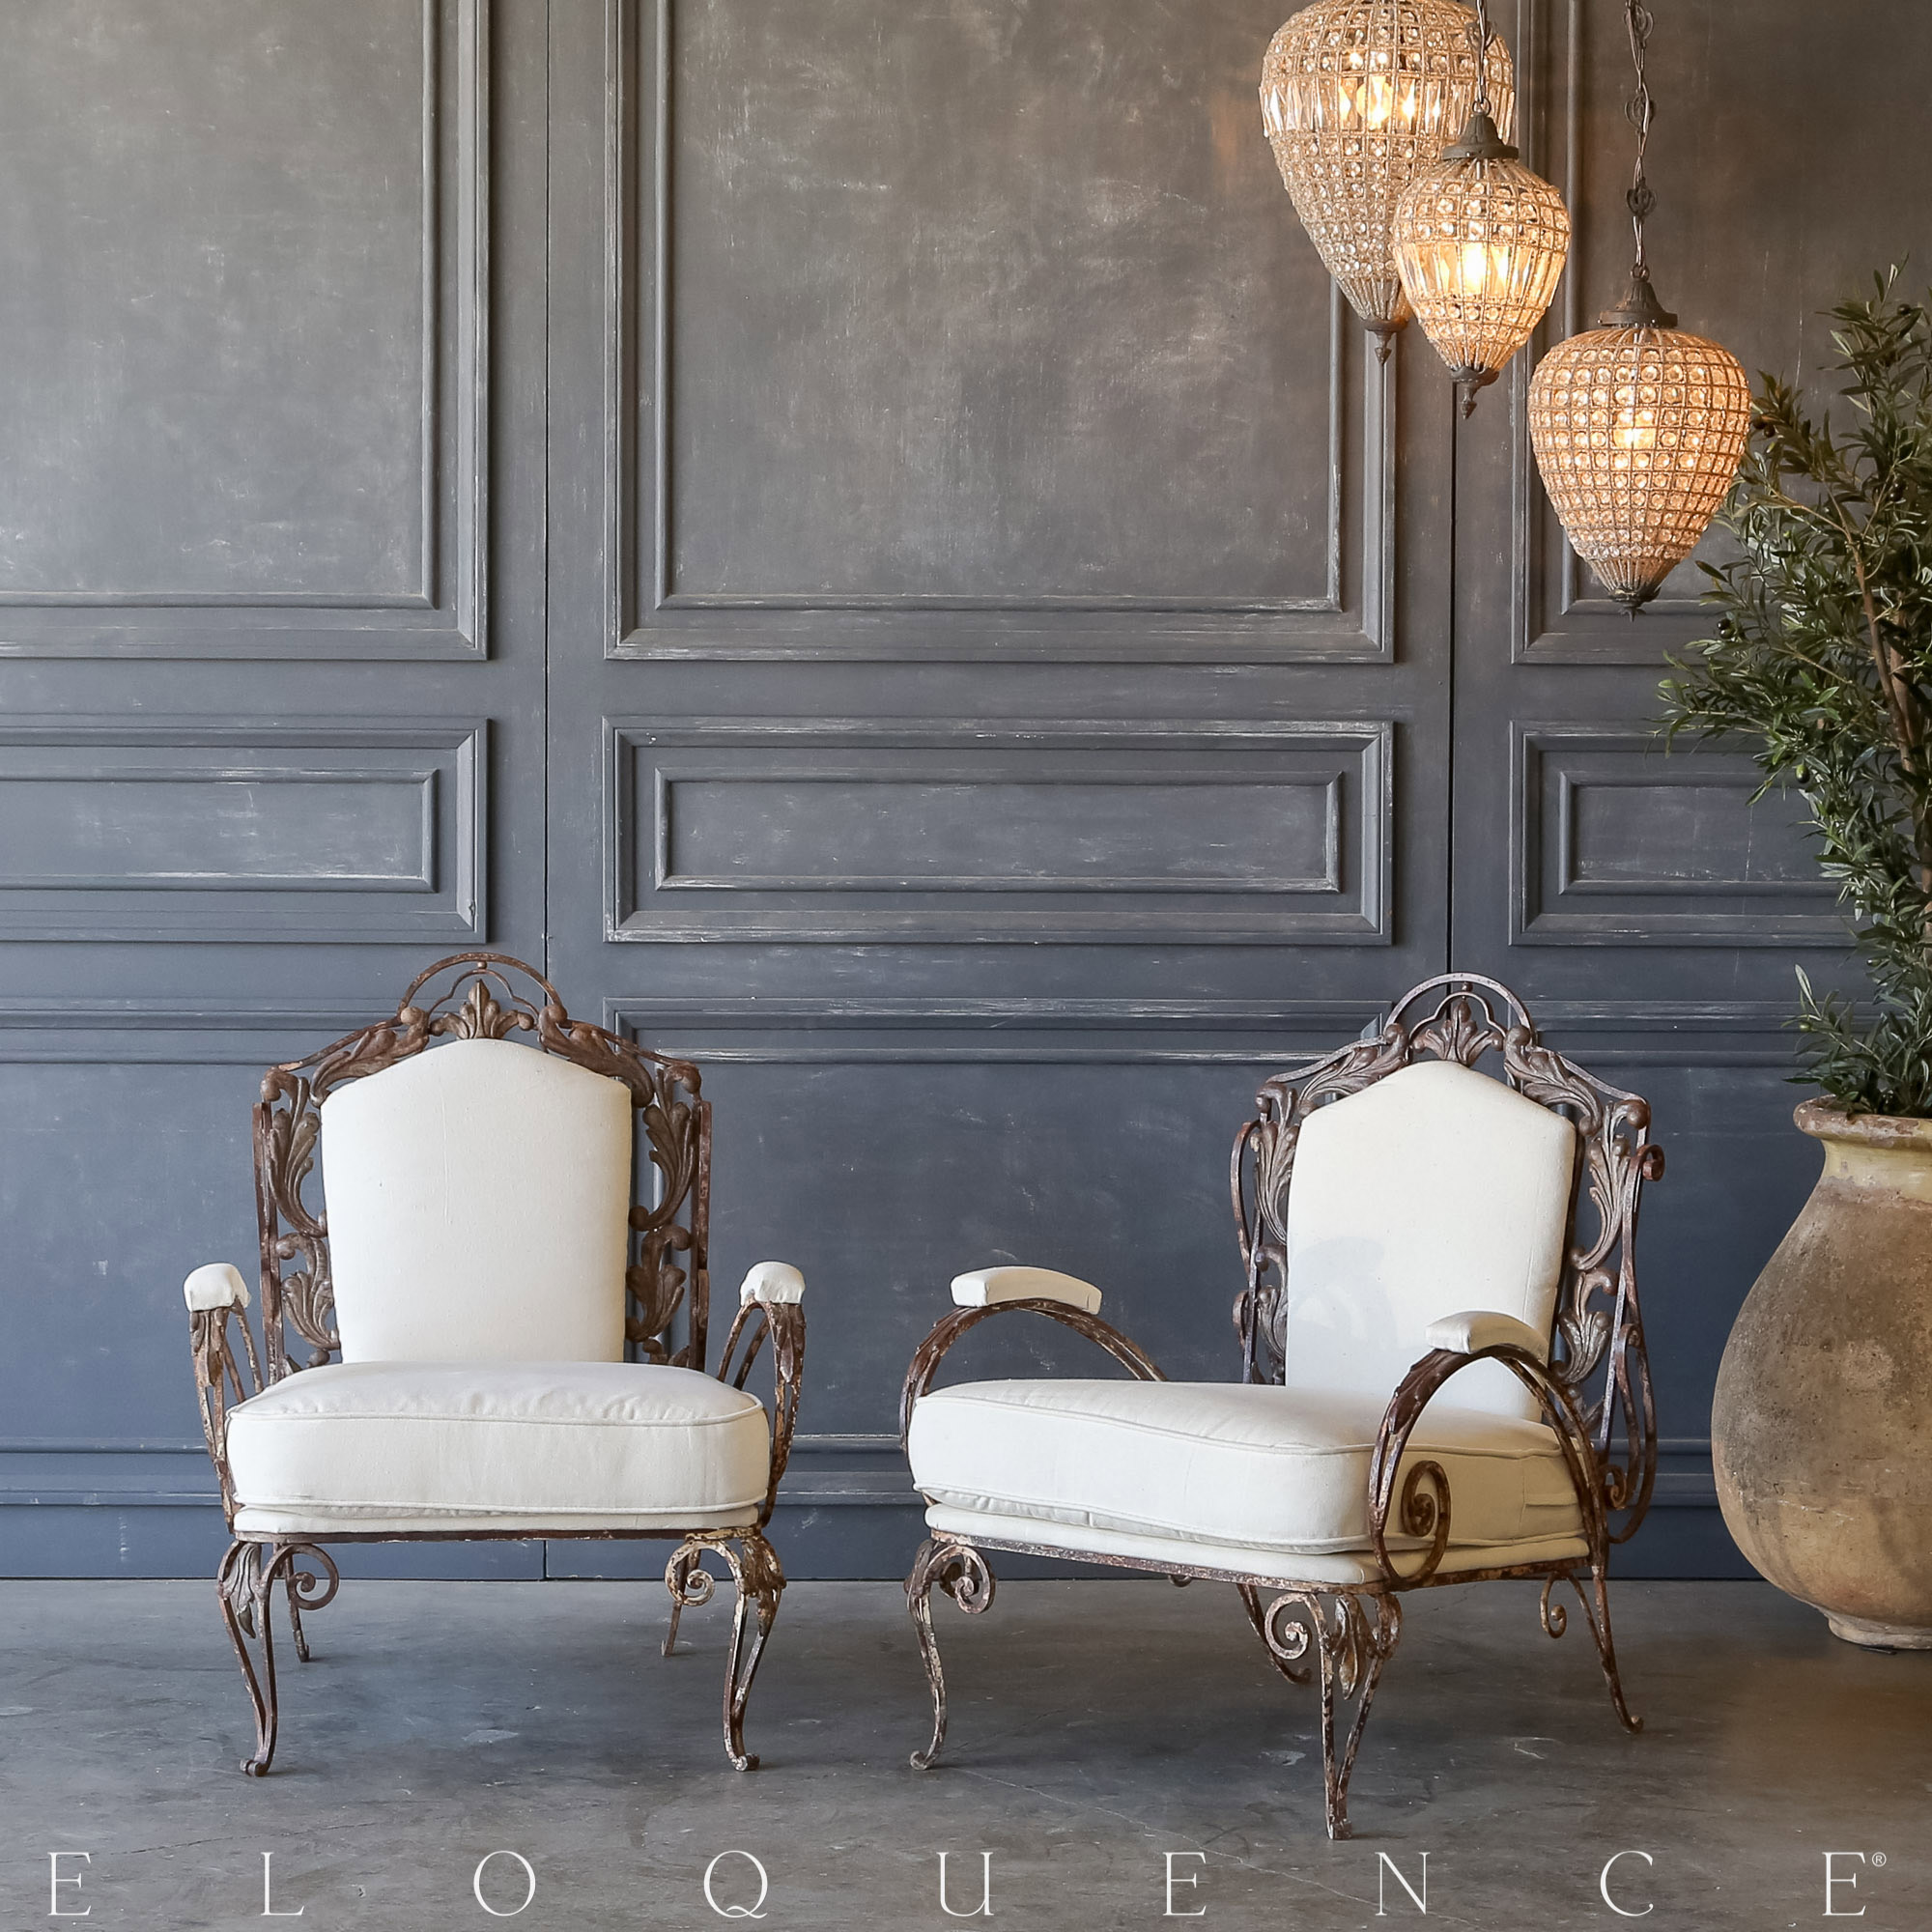 Eloquence® Pair of Vintage Aged Iron Garden Chairs: 1940